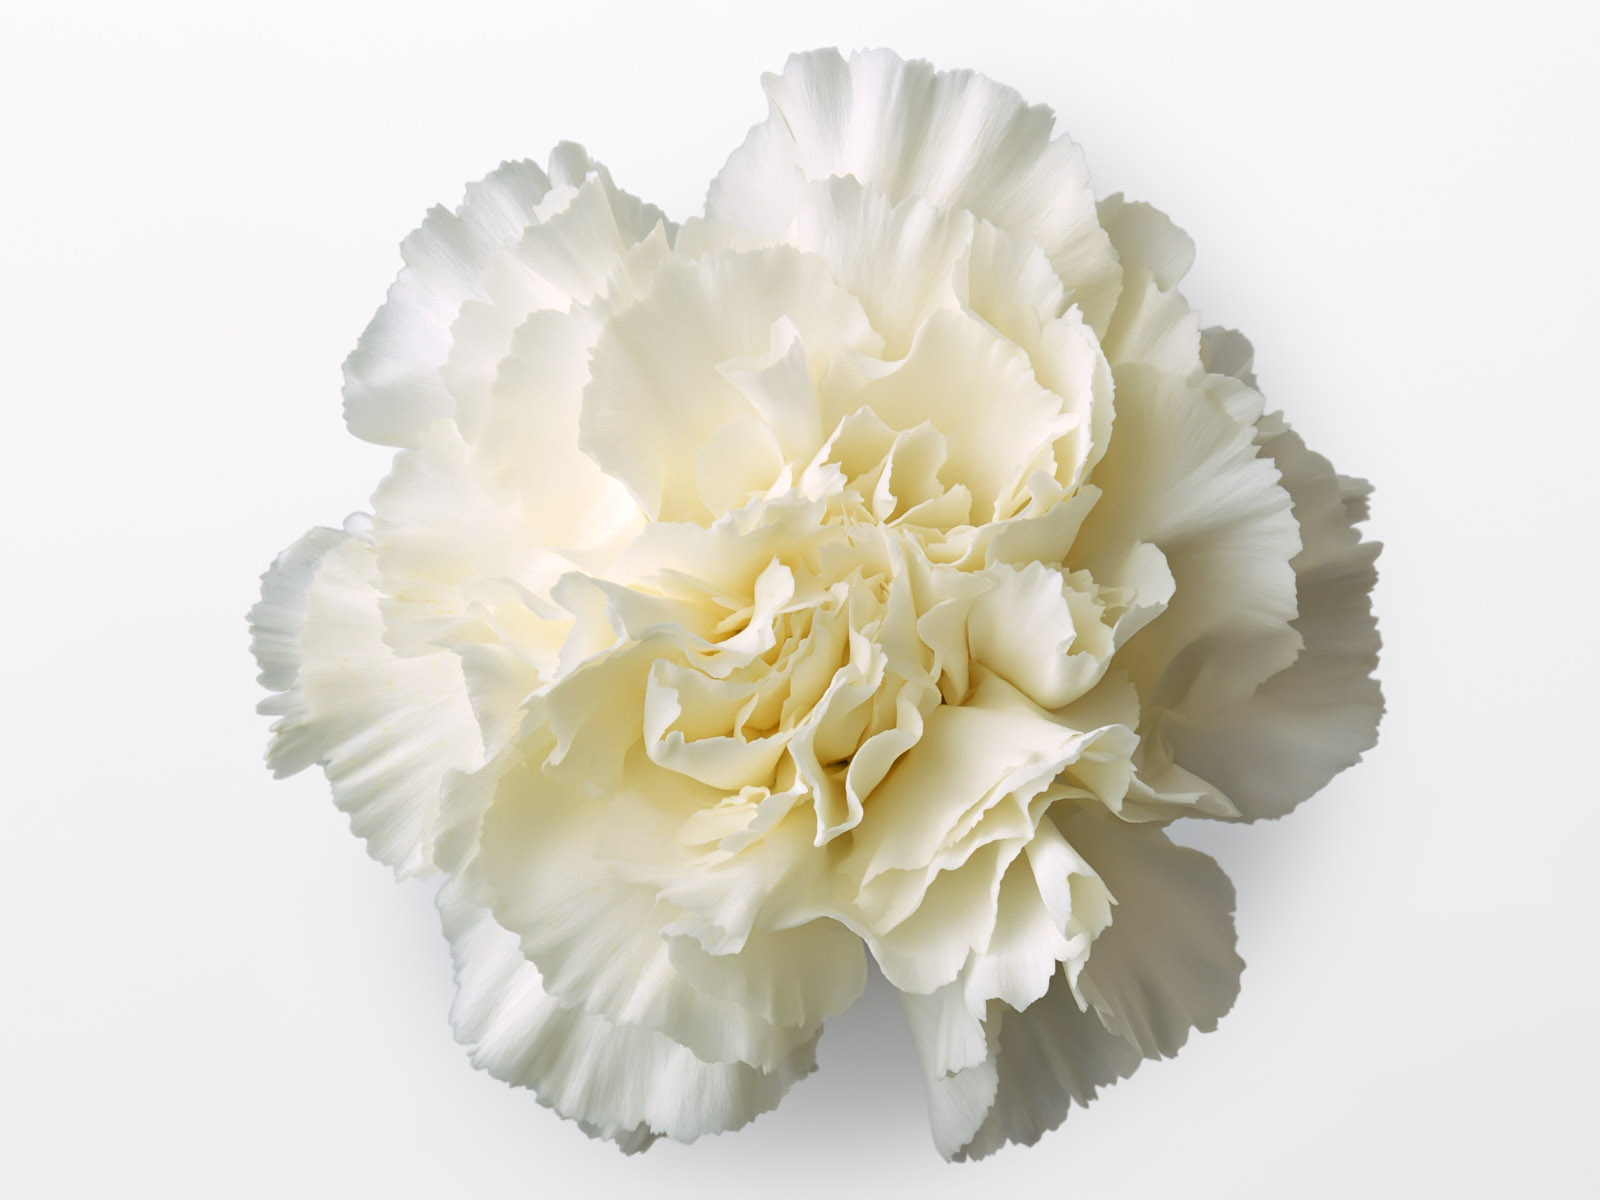 Carnation flowers 5636